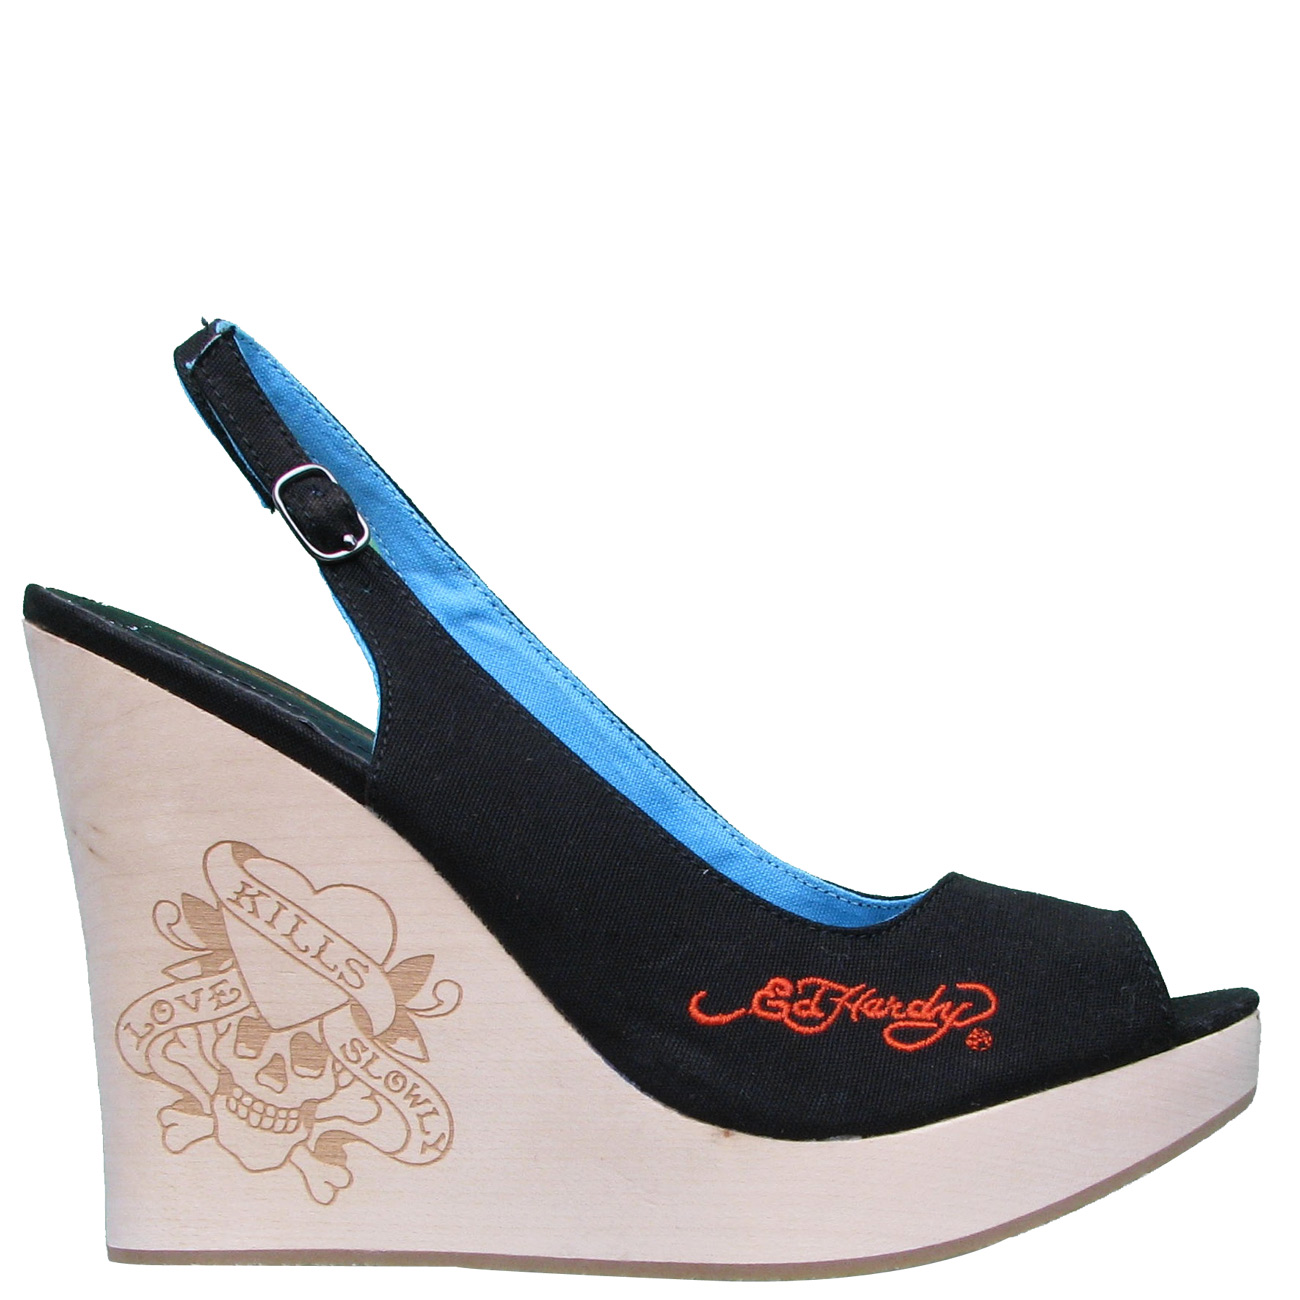 Ed Hardy Chantel Slingback Womens Wedge Shoe - Black